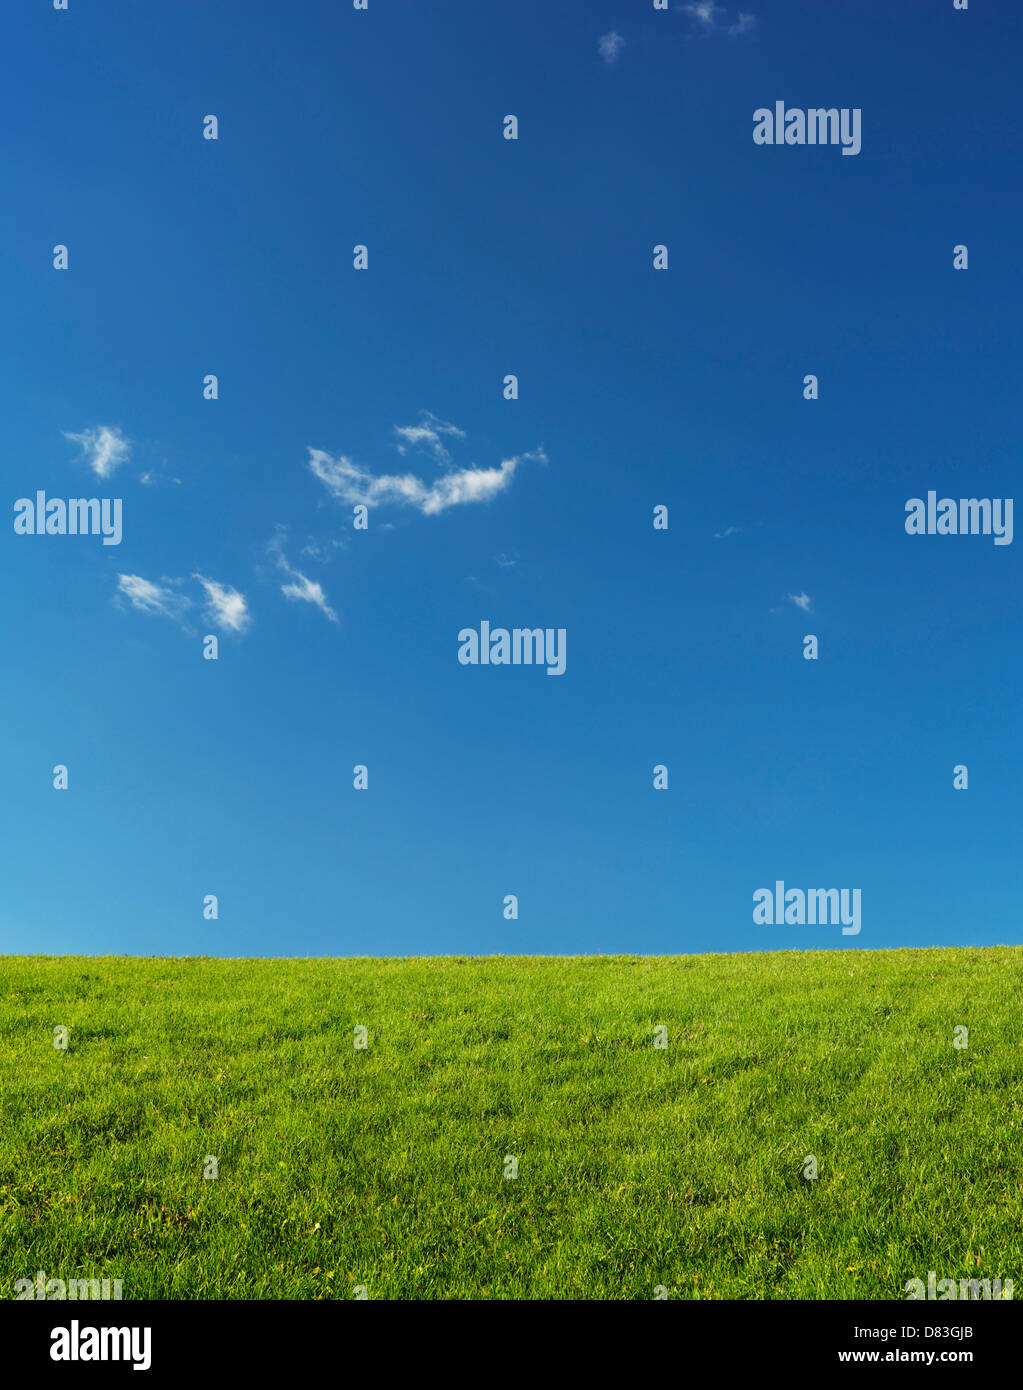 Green grassland landscape under blue clear sky lit by sunlight. Nature backdrop background. - Stock Image